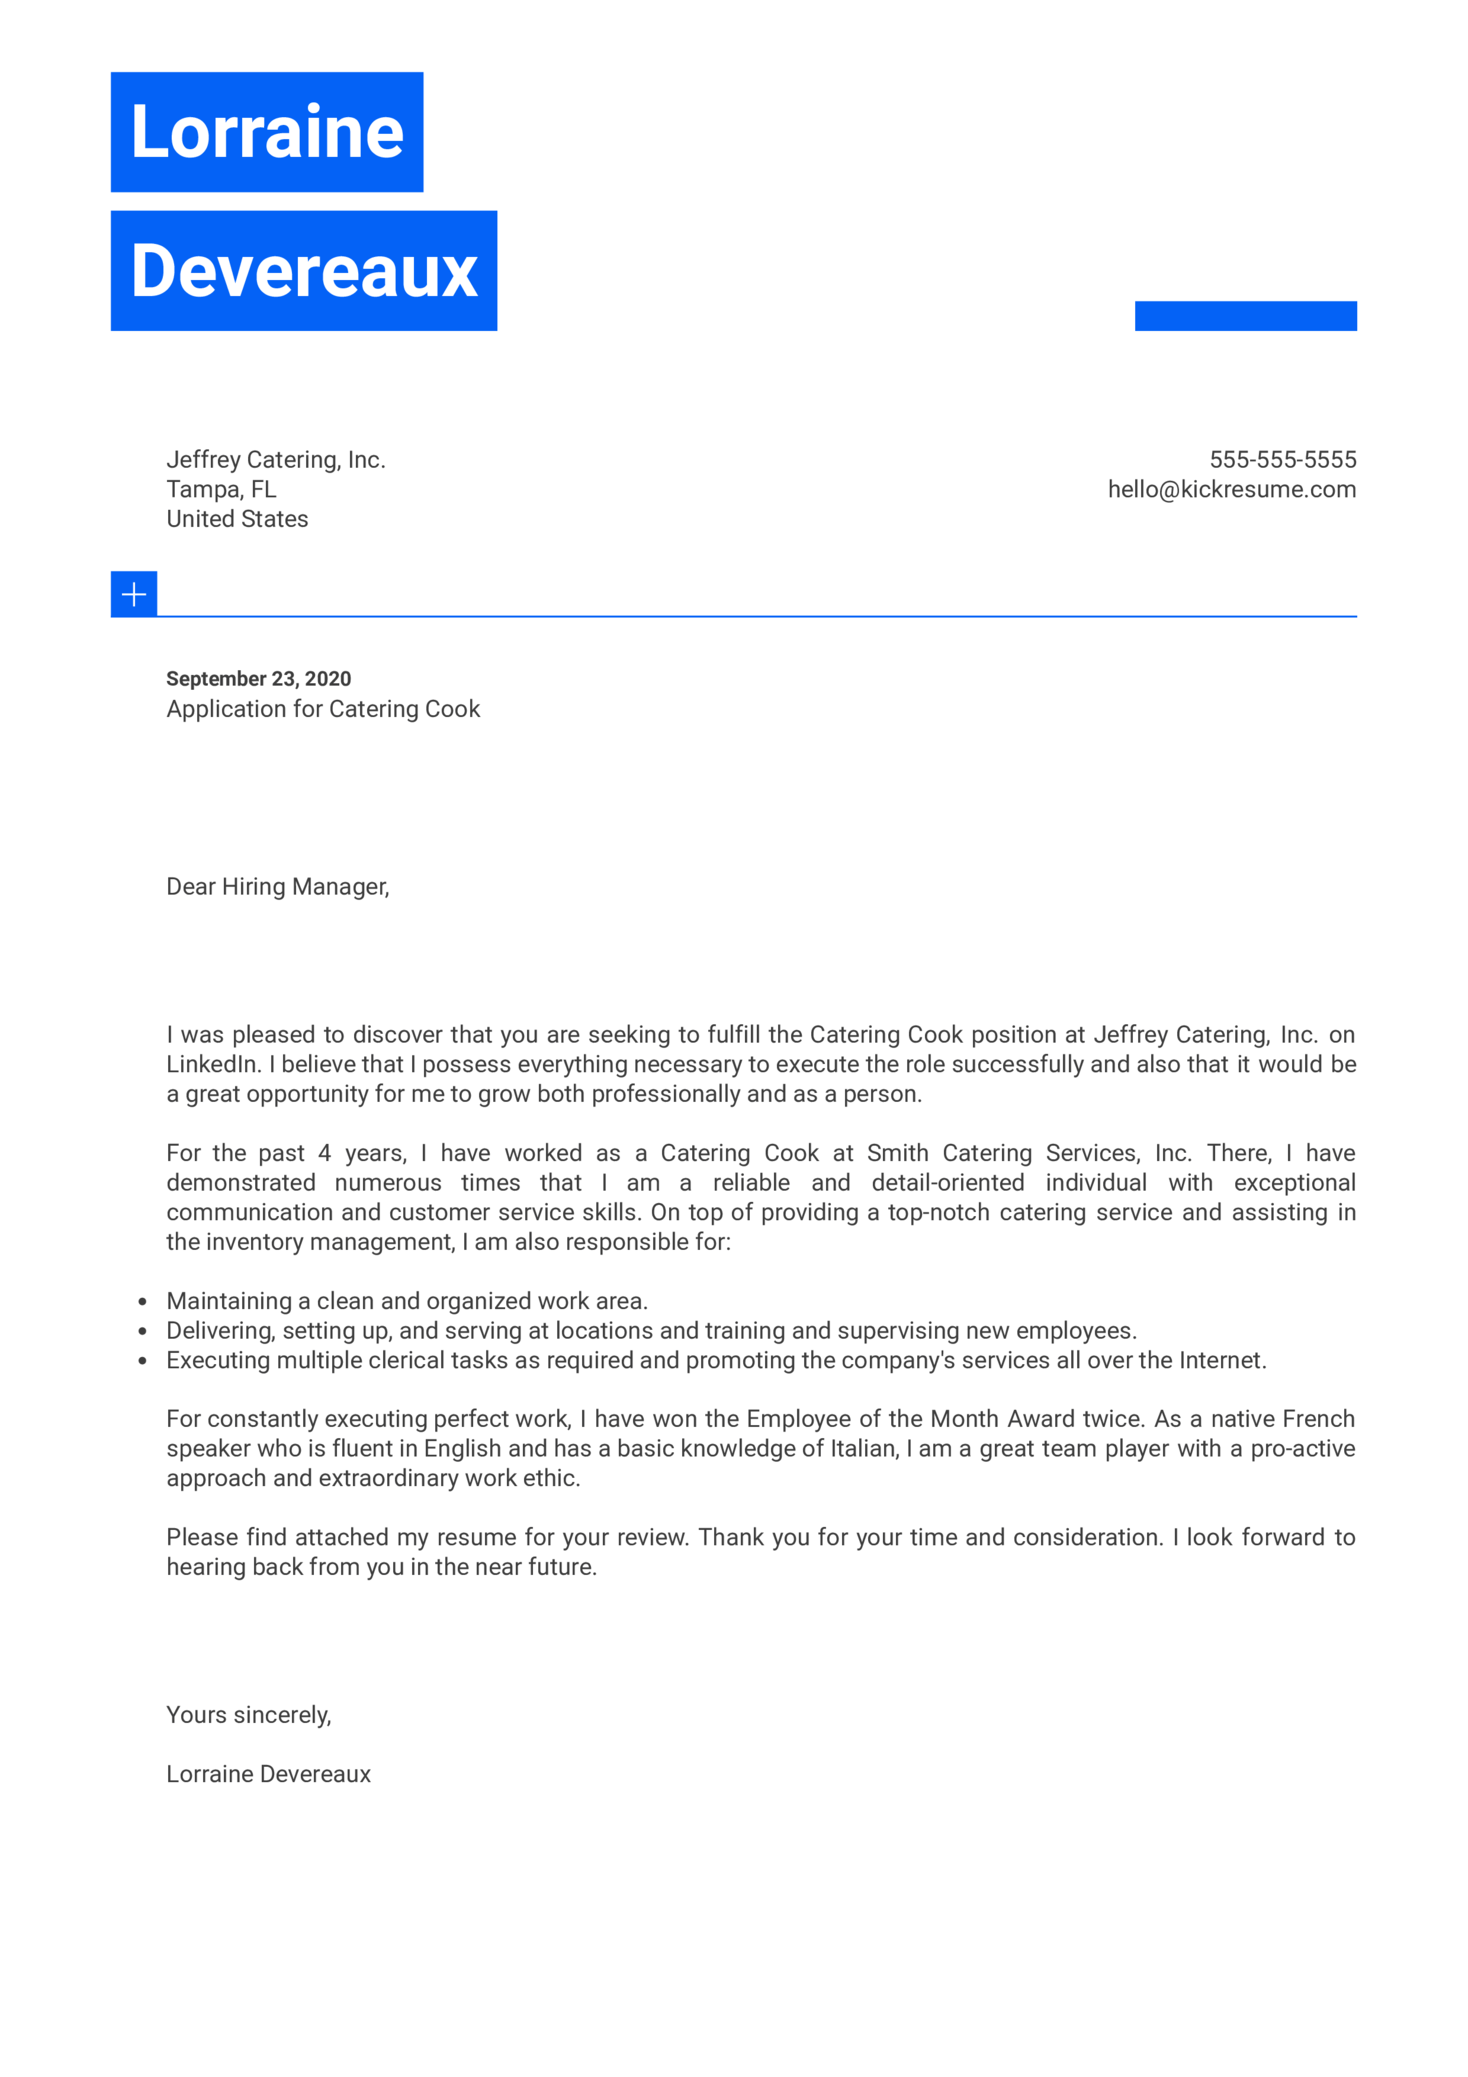 Catering Cook Cover Letter Example